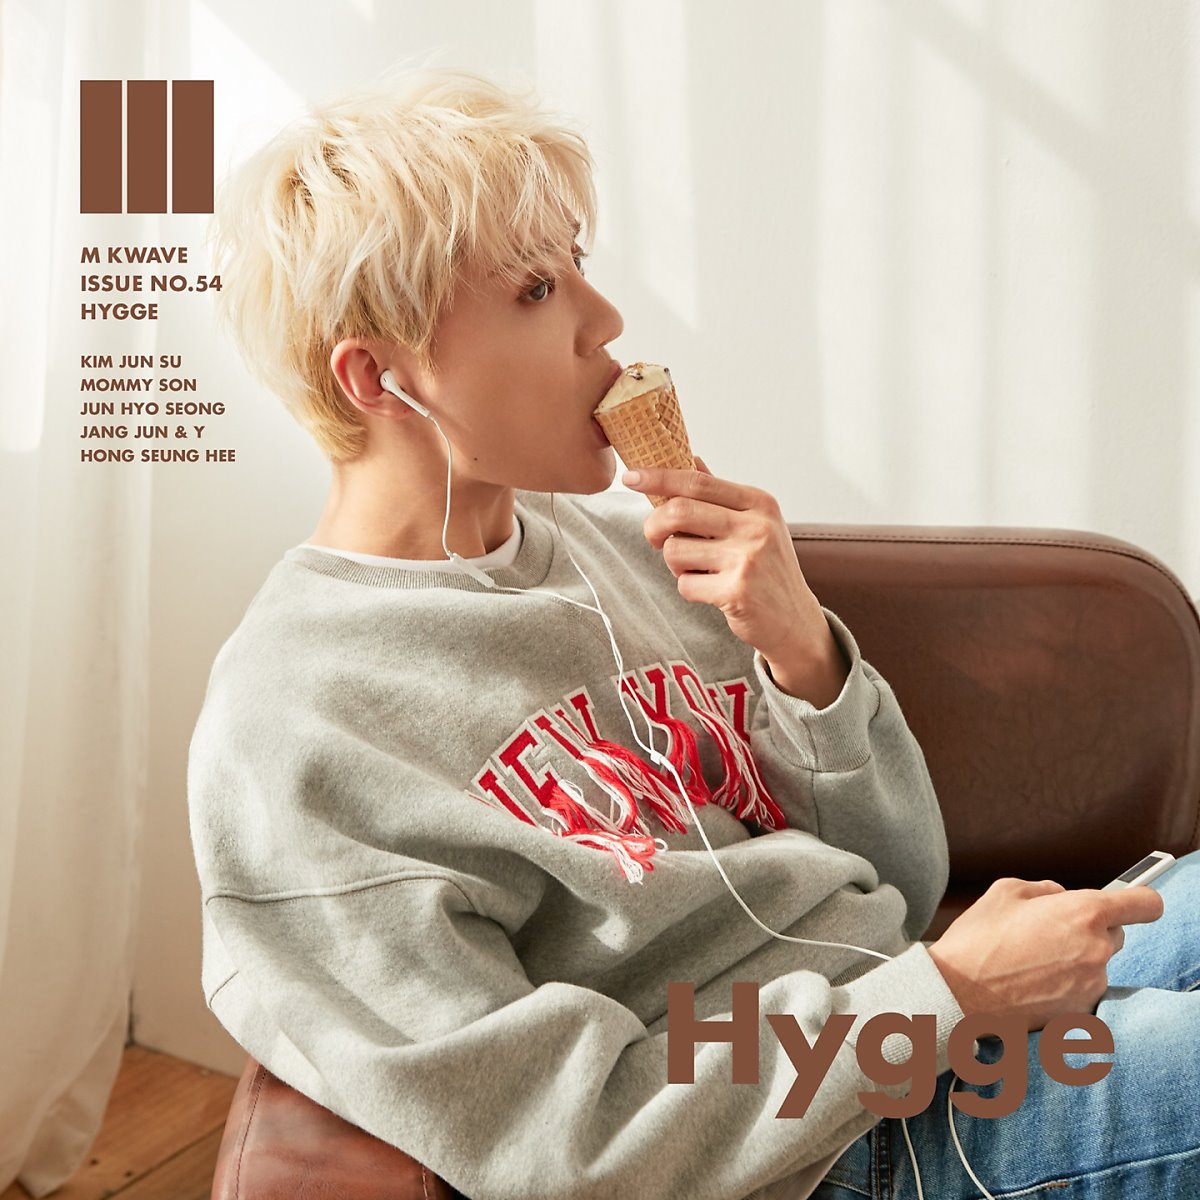 Kim JunSu For M KWAVE Magazine Cover Issue NO.54